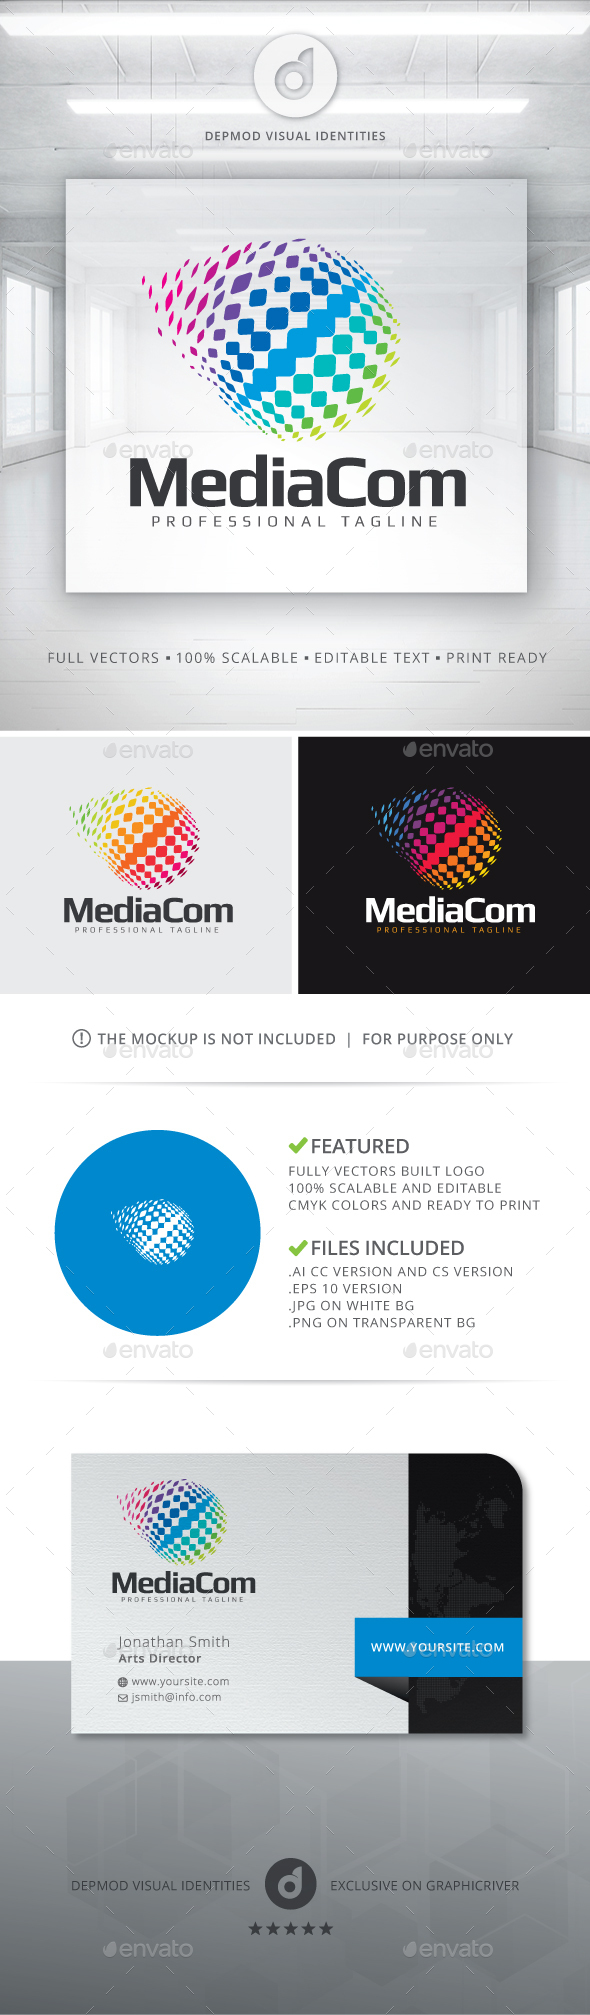 MediaCom Logo - Abstract Logo Templates